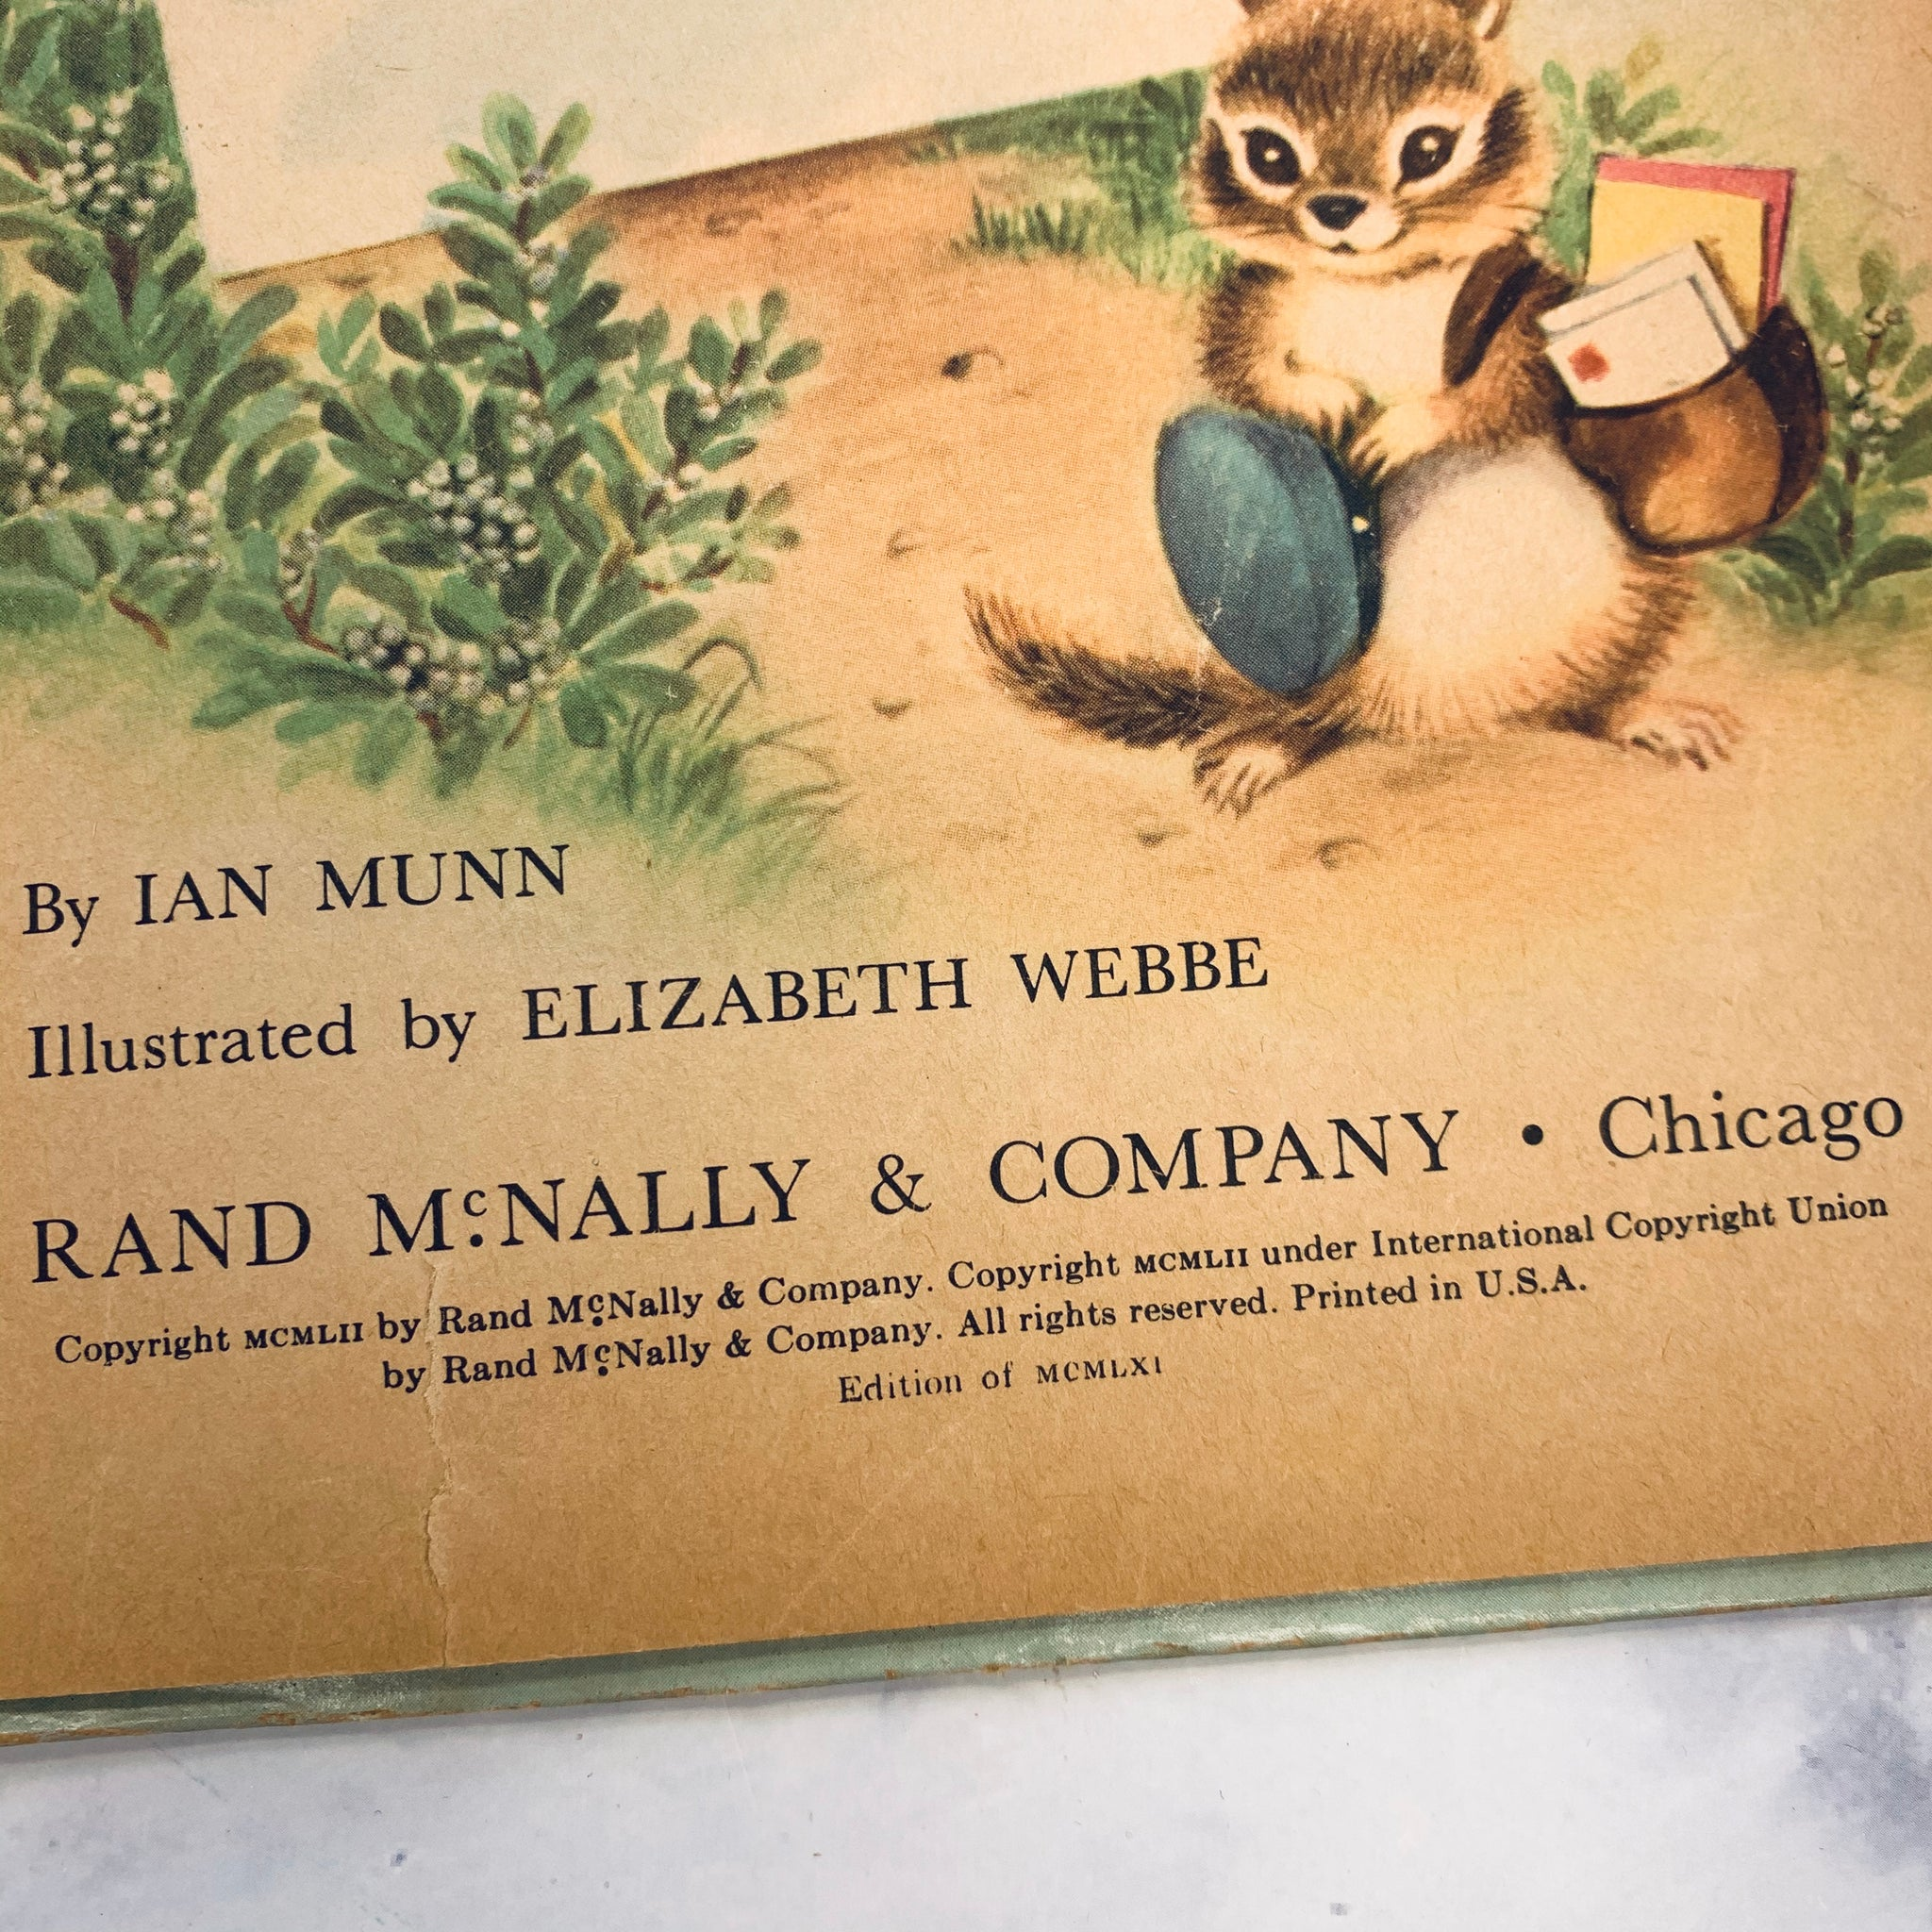 Vintage Adorable Children's Books - LZ